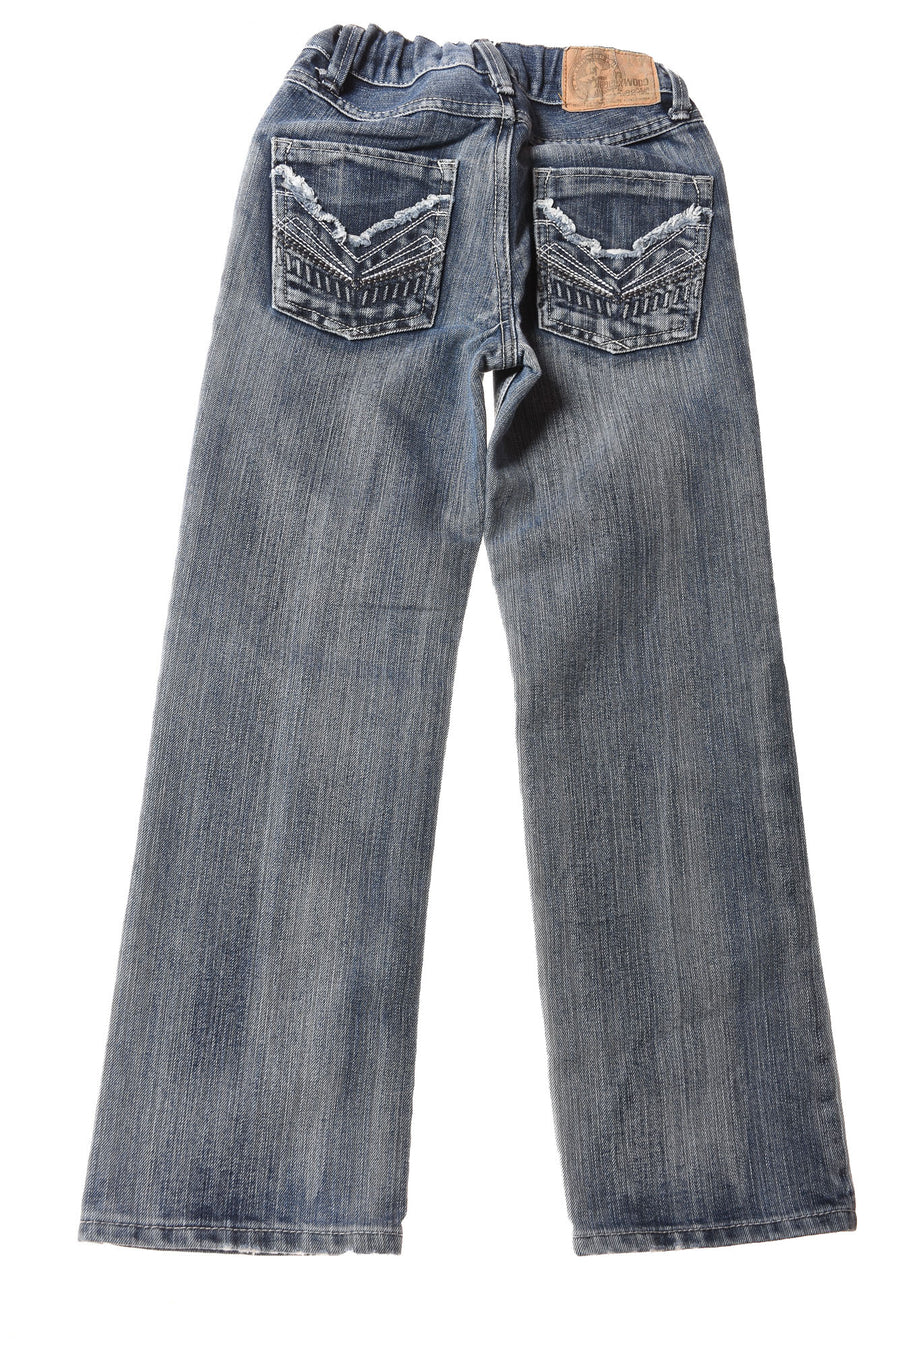 USED Hollywood Girl's Jeans 10 Blue